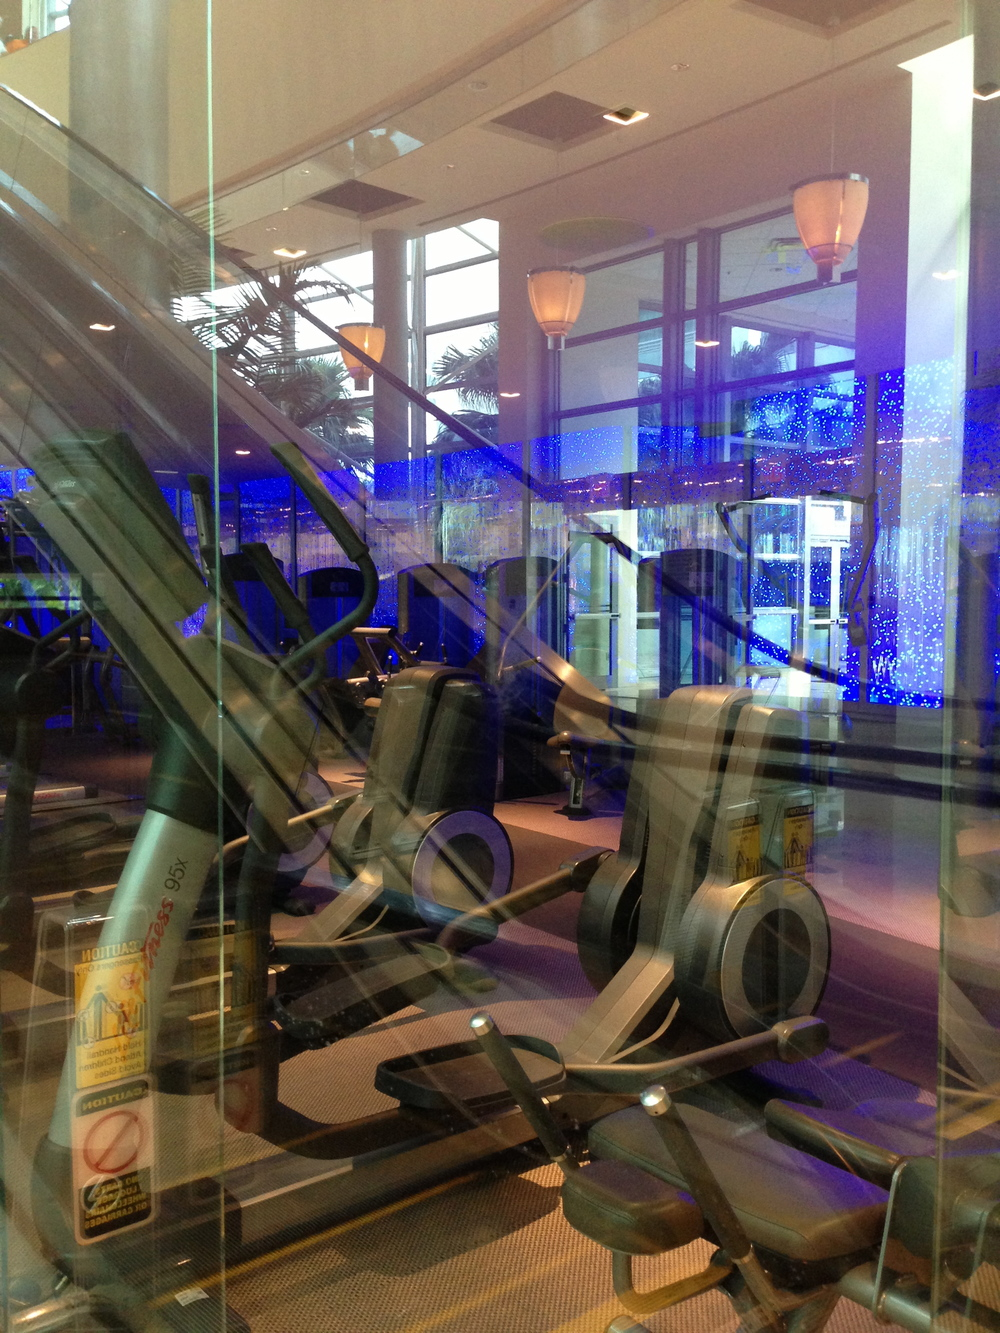 Workout facilities at Westin Diplomat in Hollywood, Florida - host of the Niche Parent 2013 Conference.